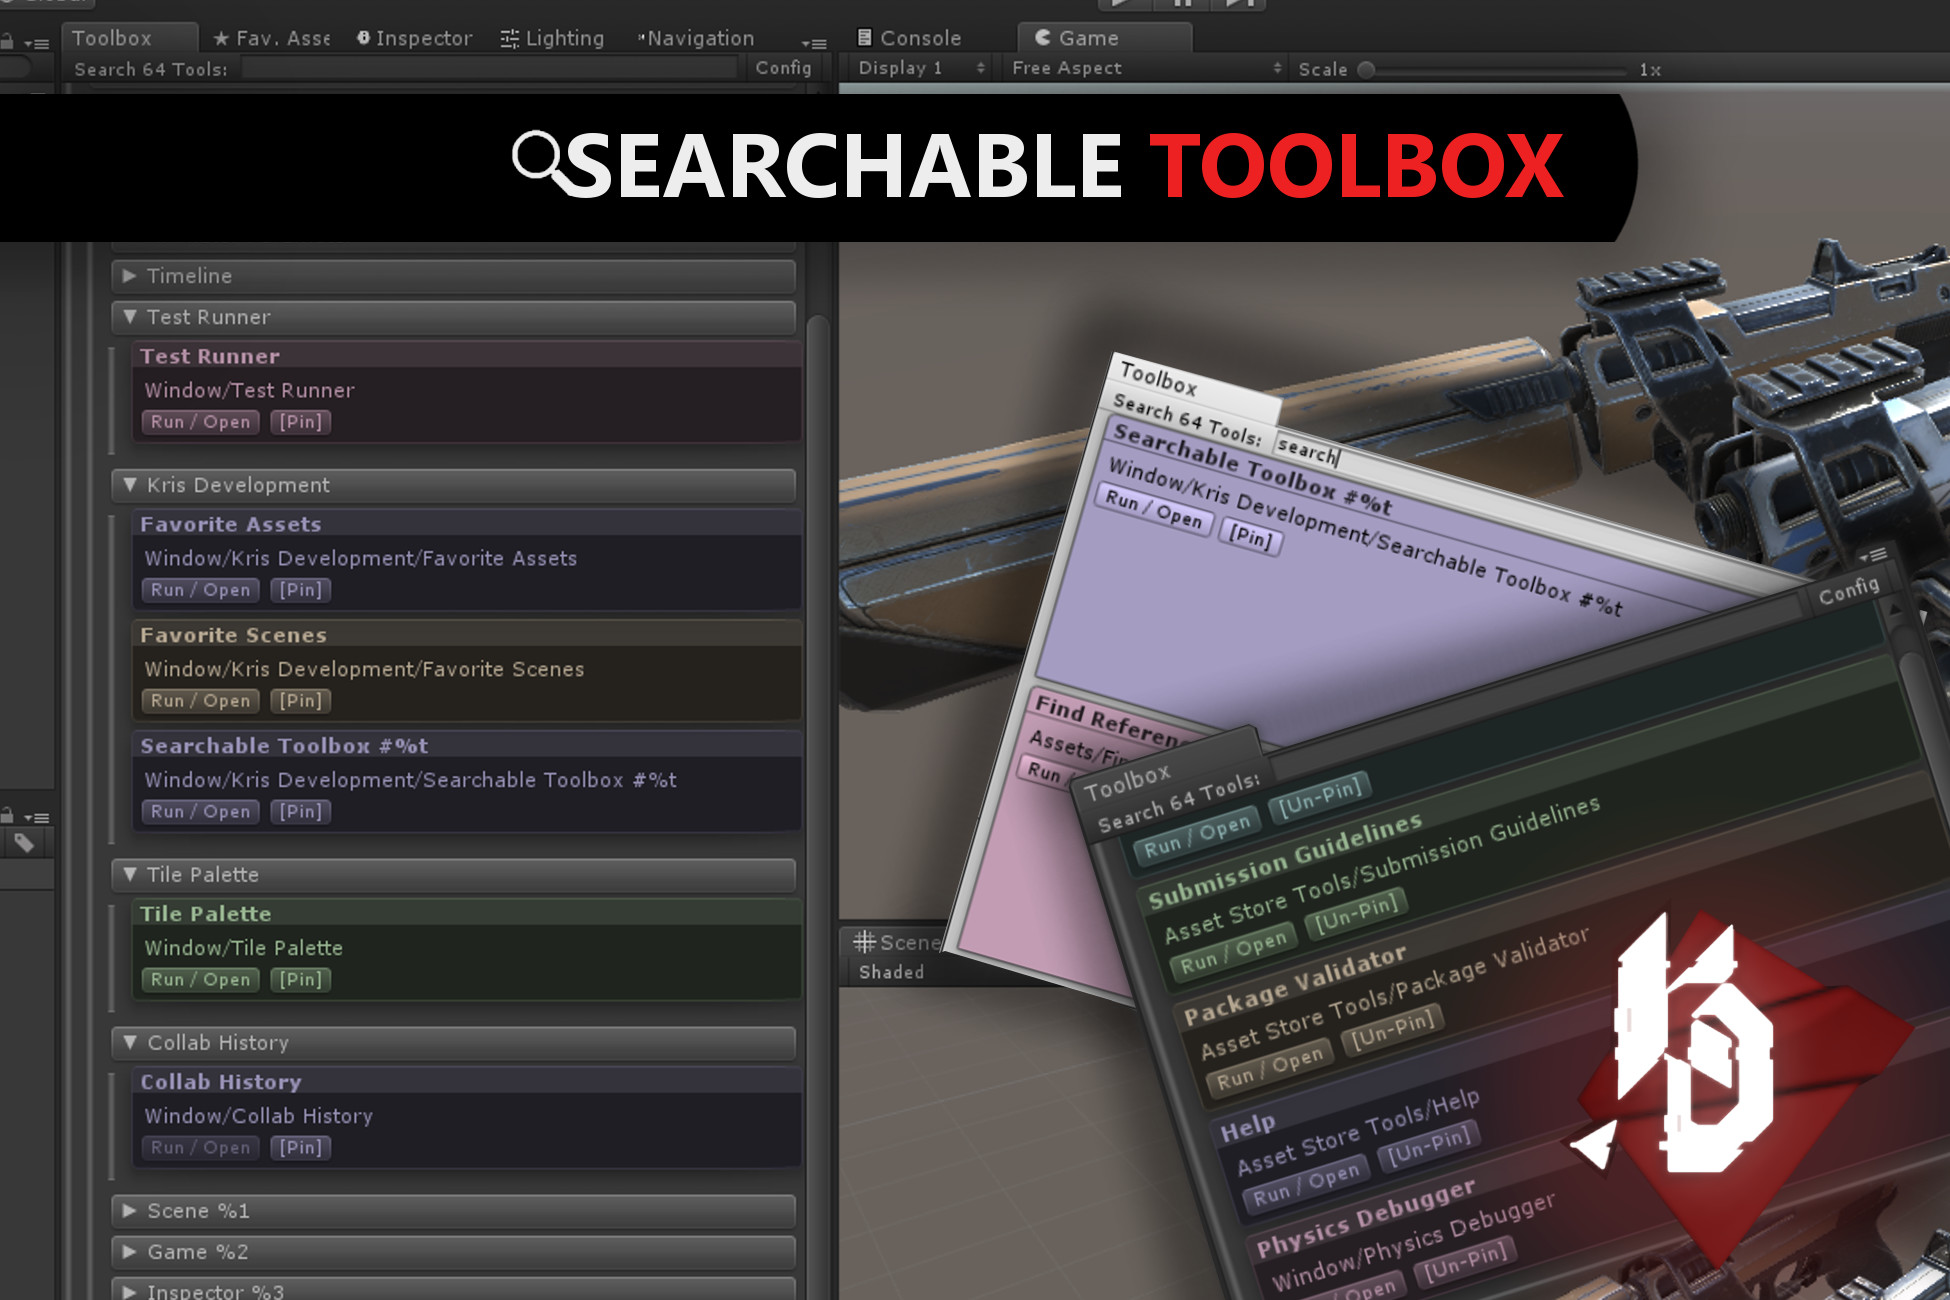 Searchable Toolbox